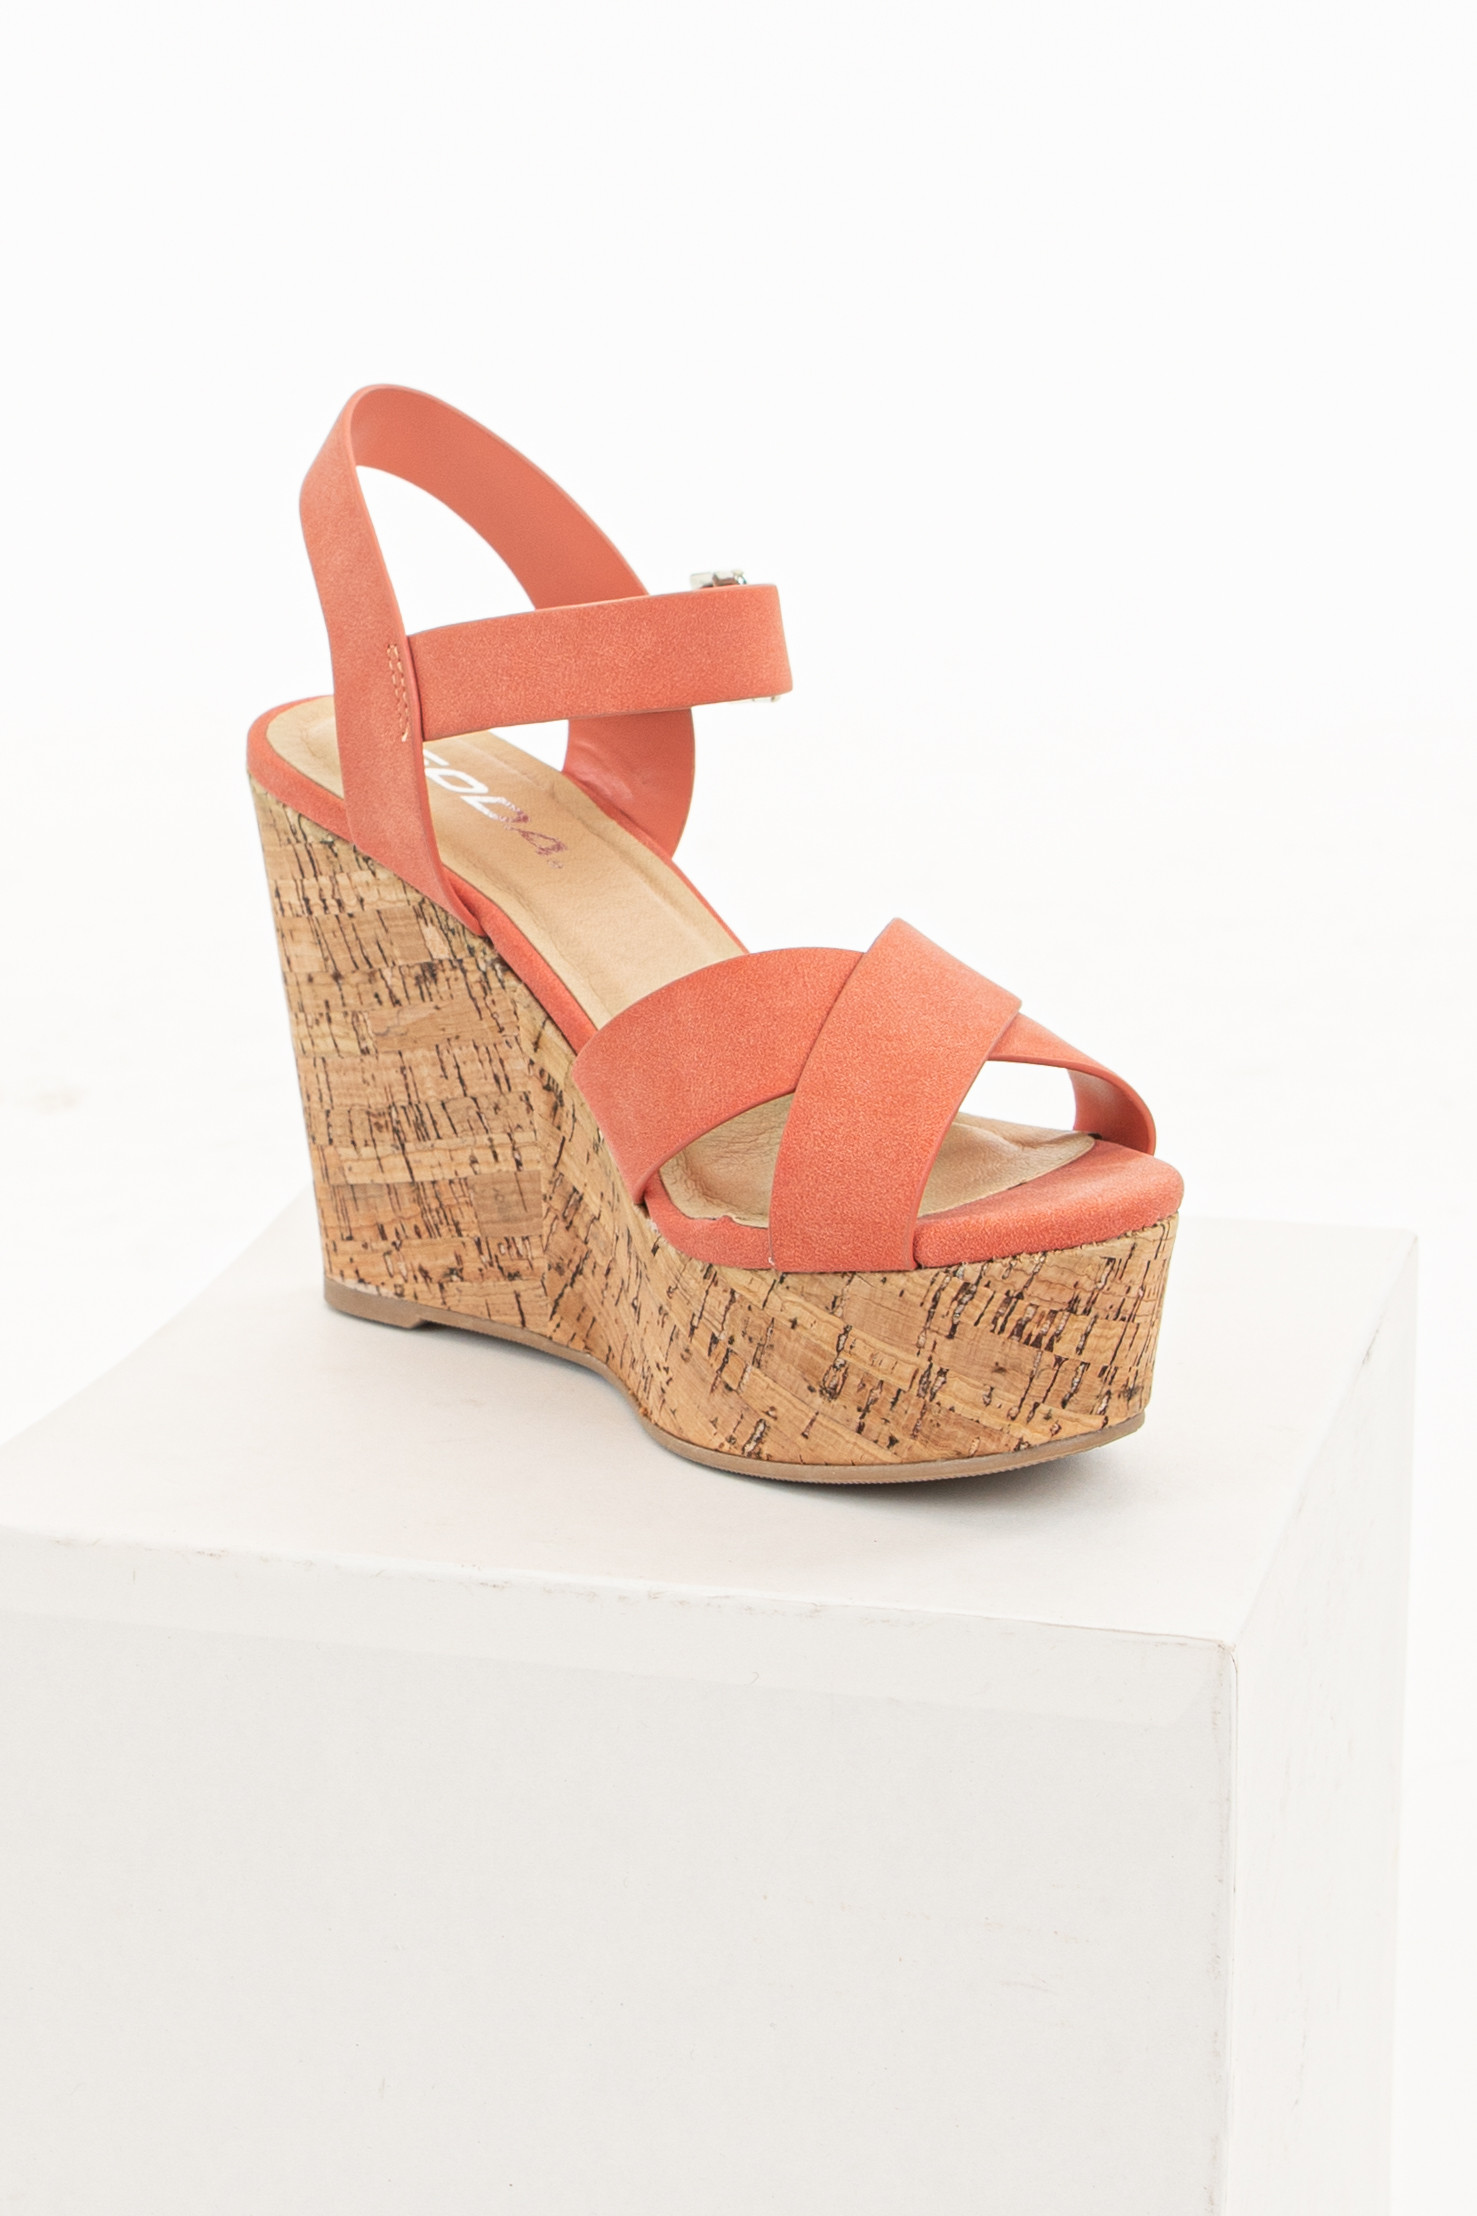 Coral Criss Cross Strap Cork Wedge Heels with Ankle Straps